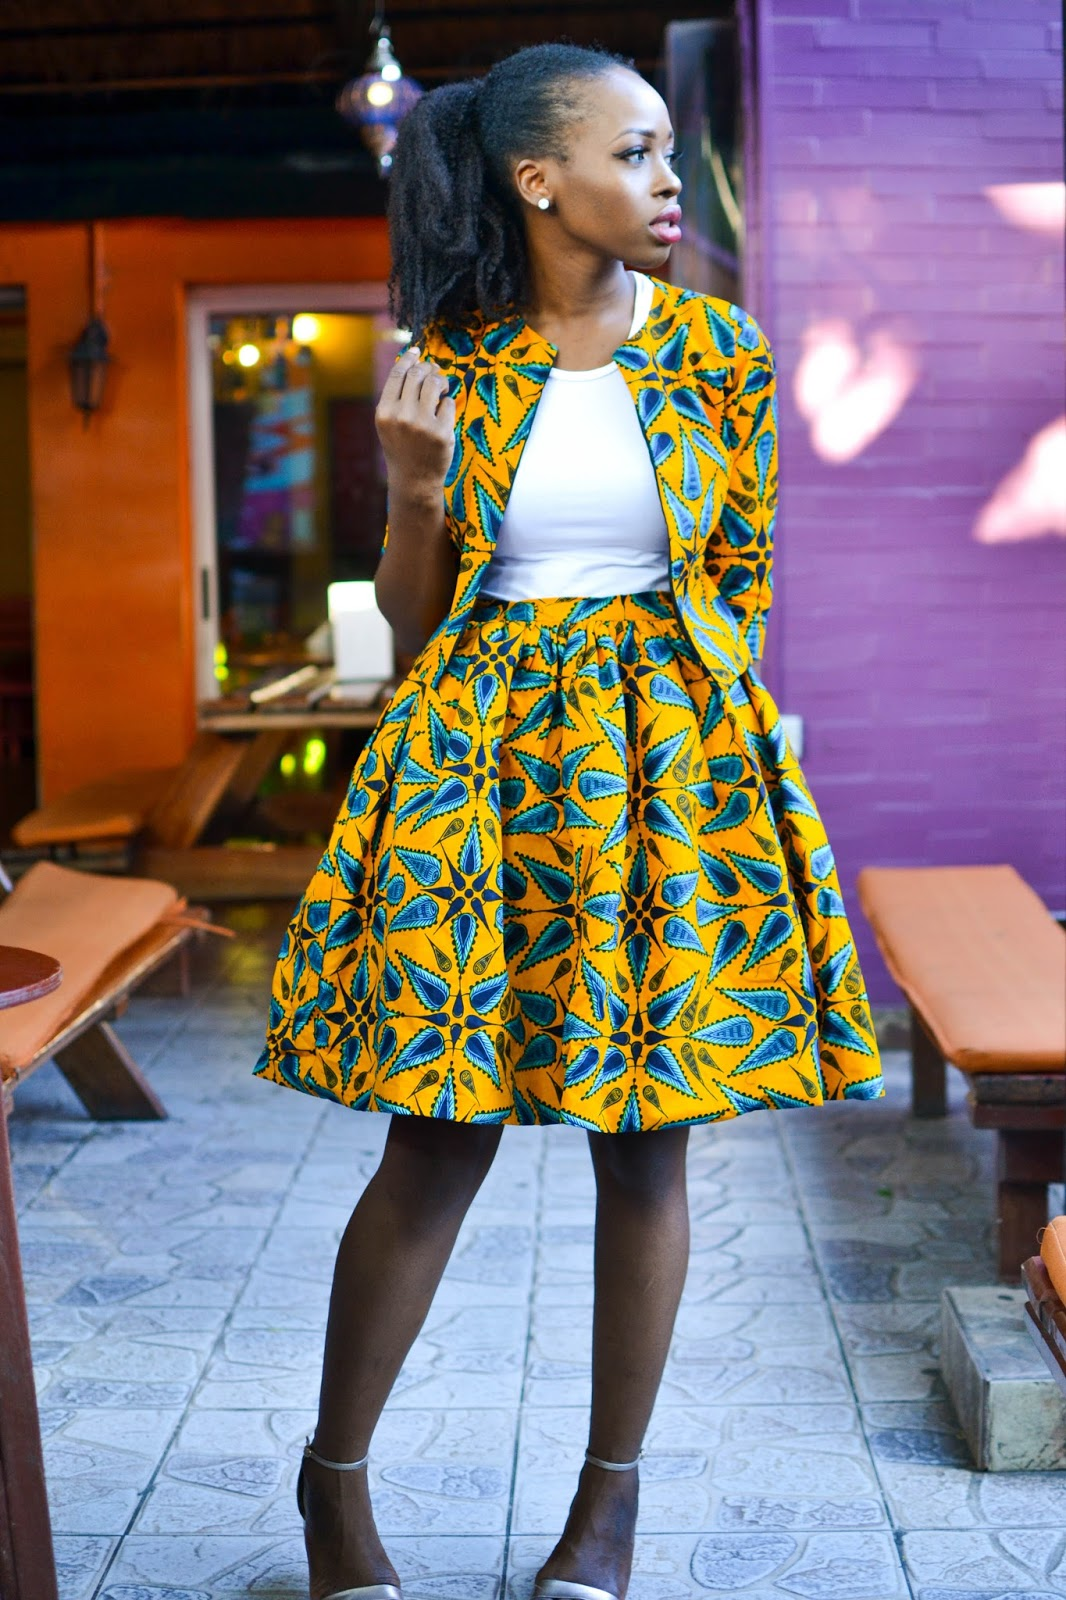 African Prints on a Black Influencer